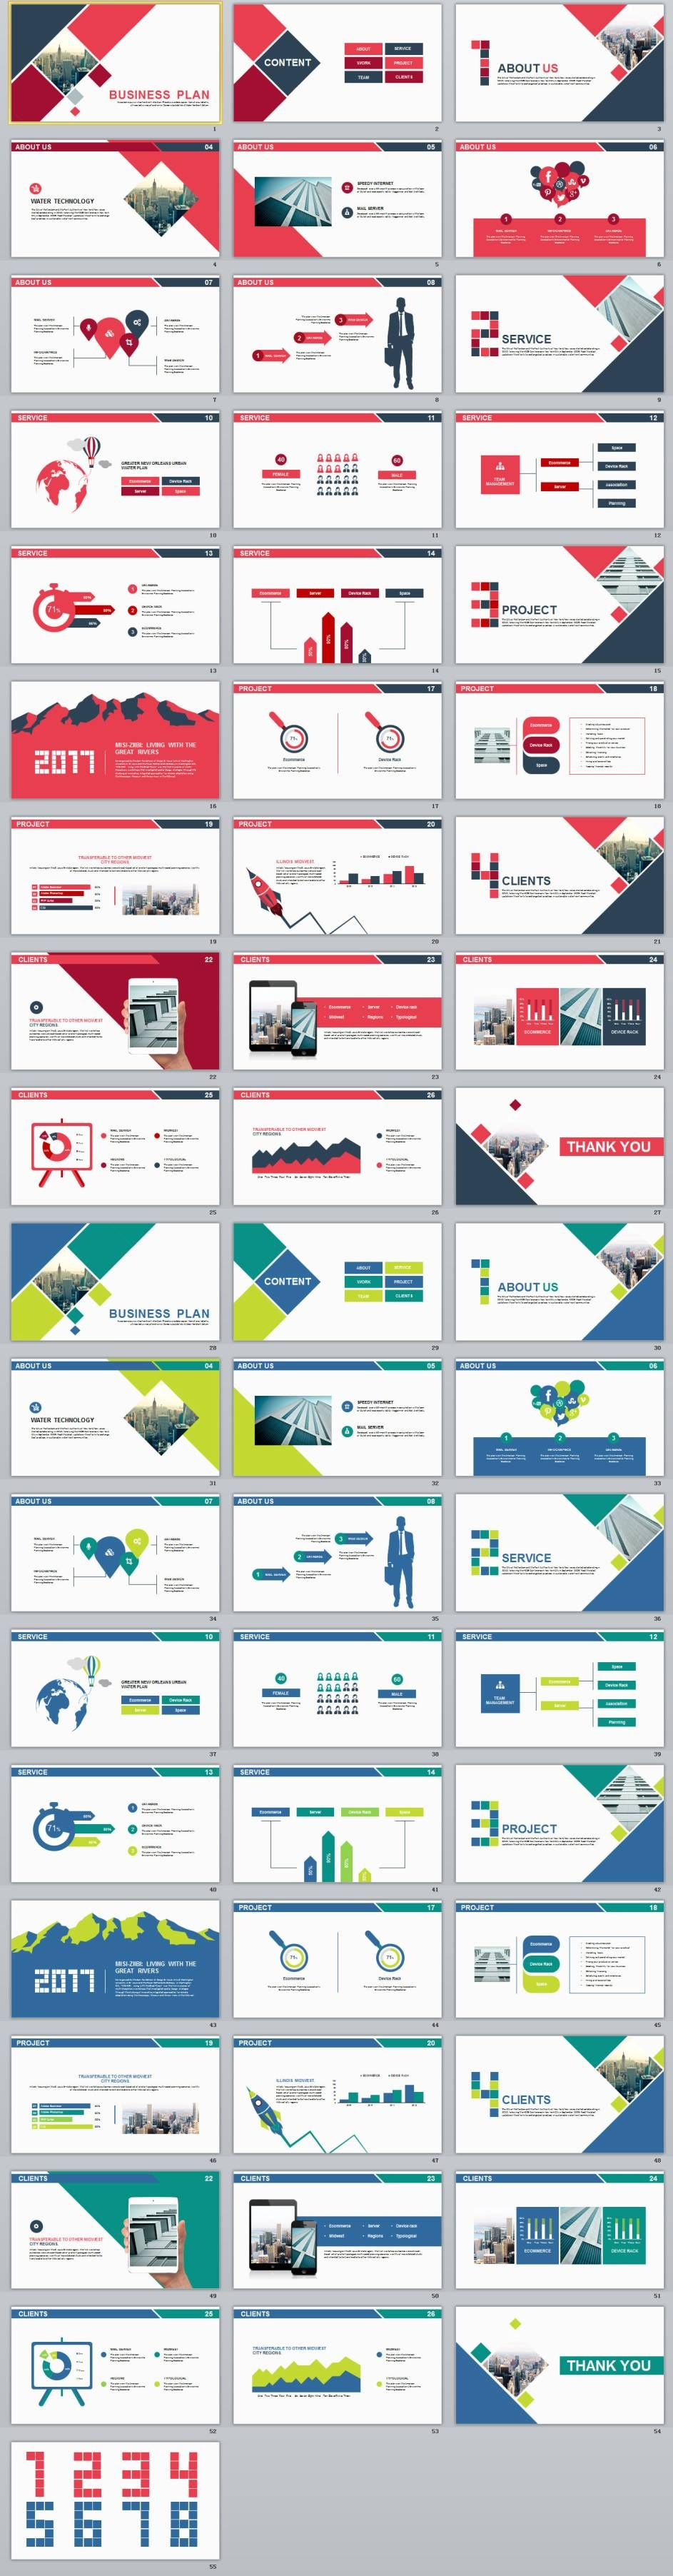 2in1 simple business plan powerpoint template powerpoint 2in1 simple business plan powerpoint template wajeb Gallery